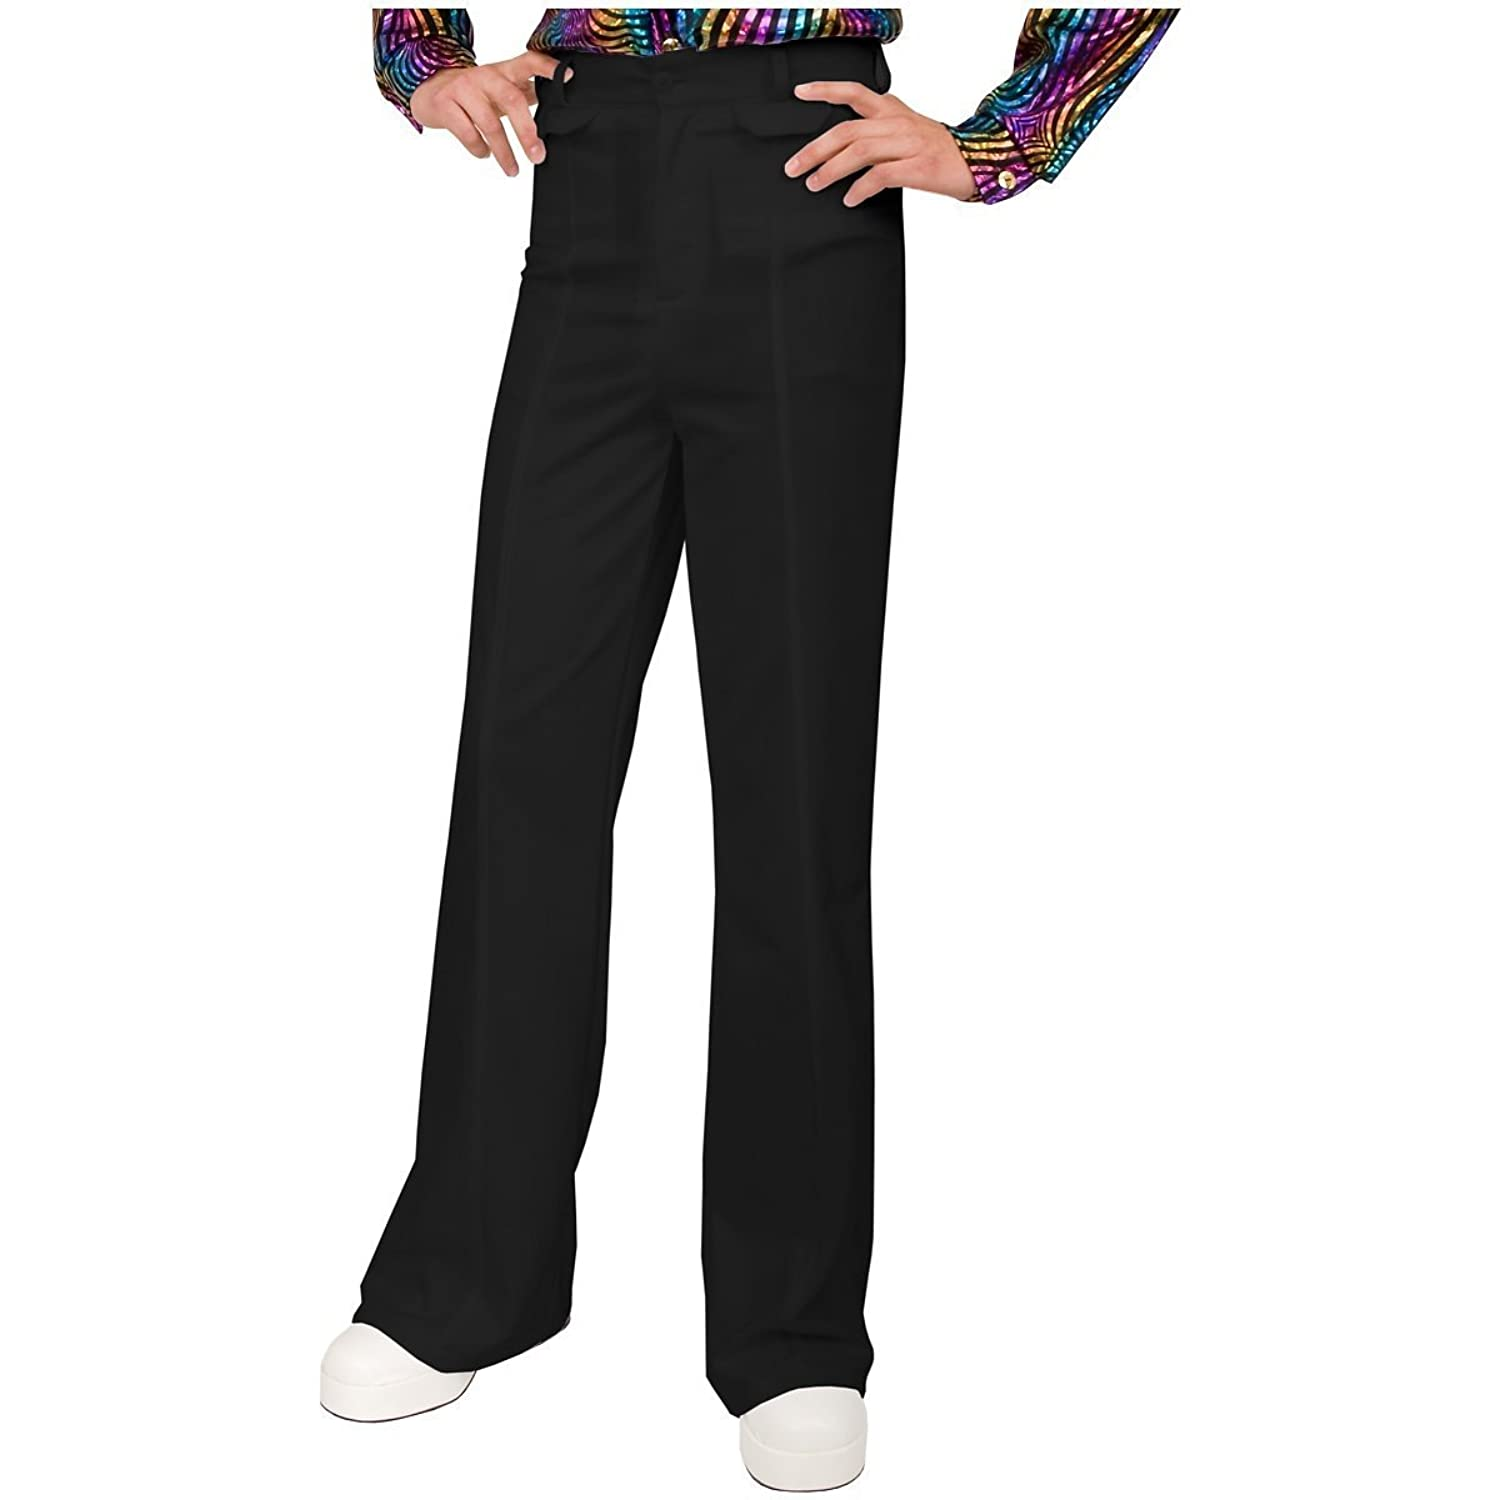 60s -70s  Men's Costumes : Hippie, Disco, Beatles Charades Mens Disco Pant $26.57 AT vintagedancer.com